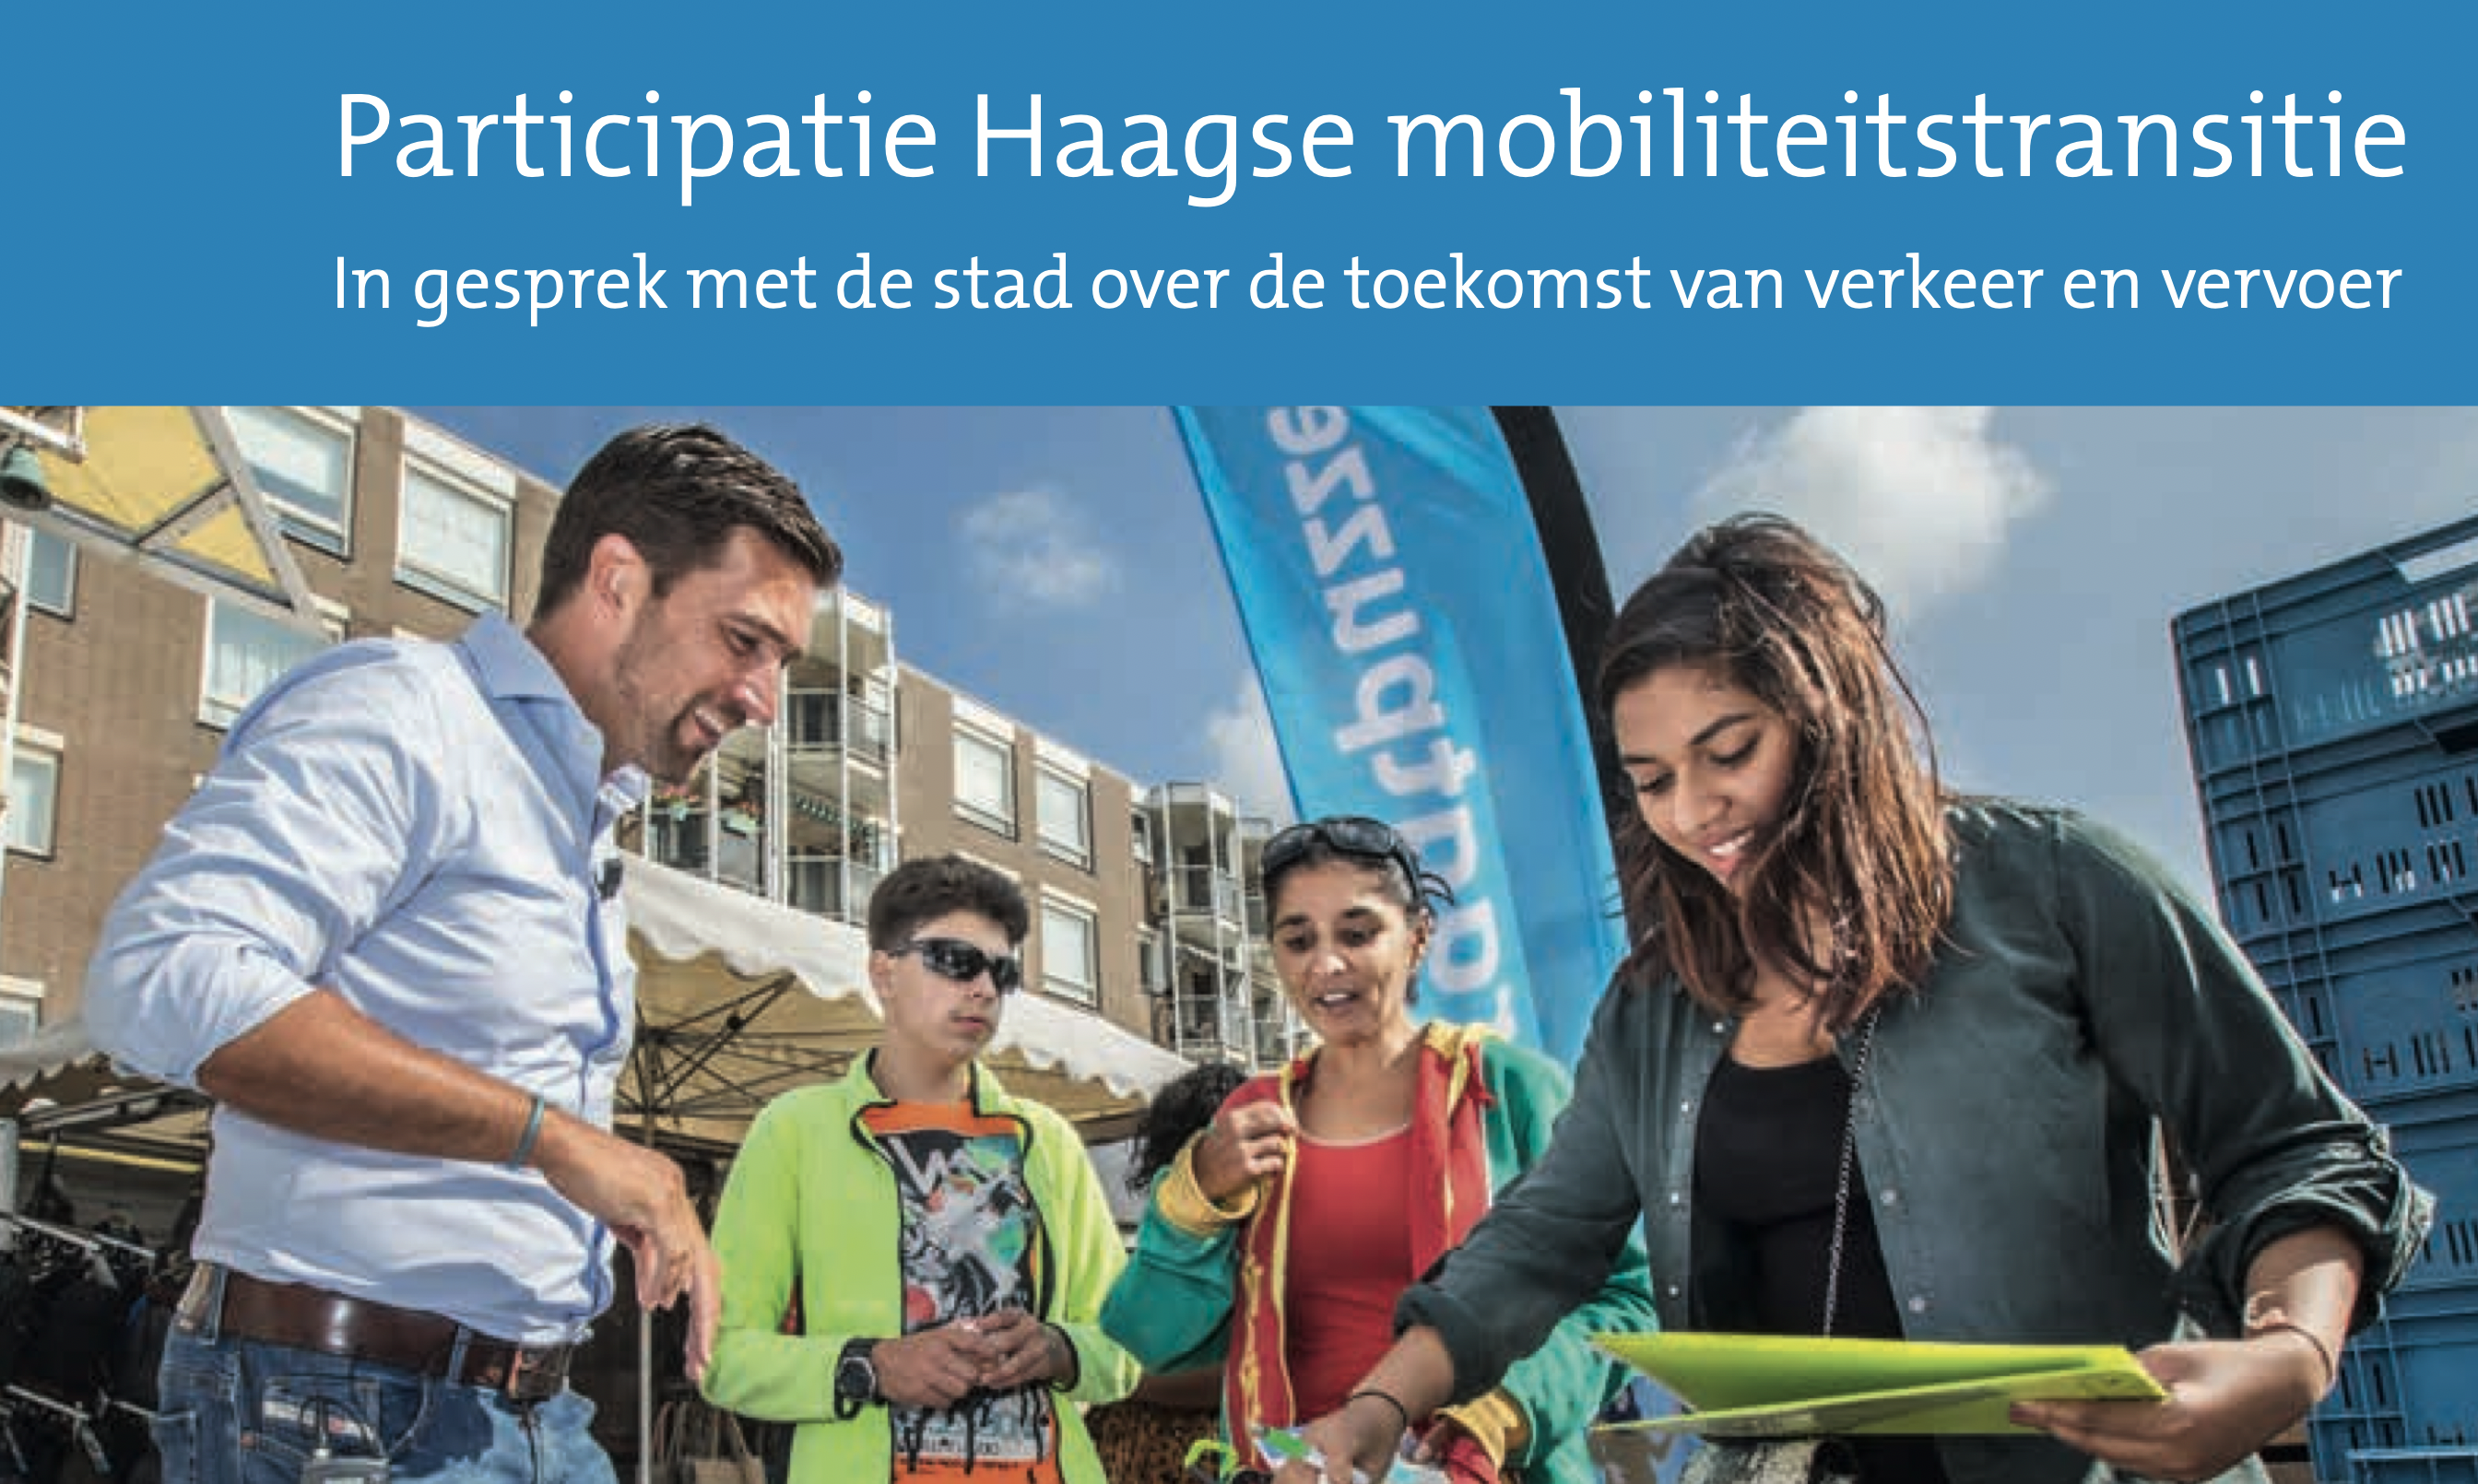 Haagse Mobiliteitstransitie